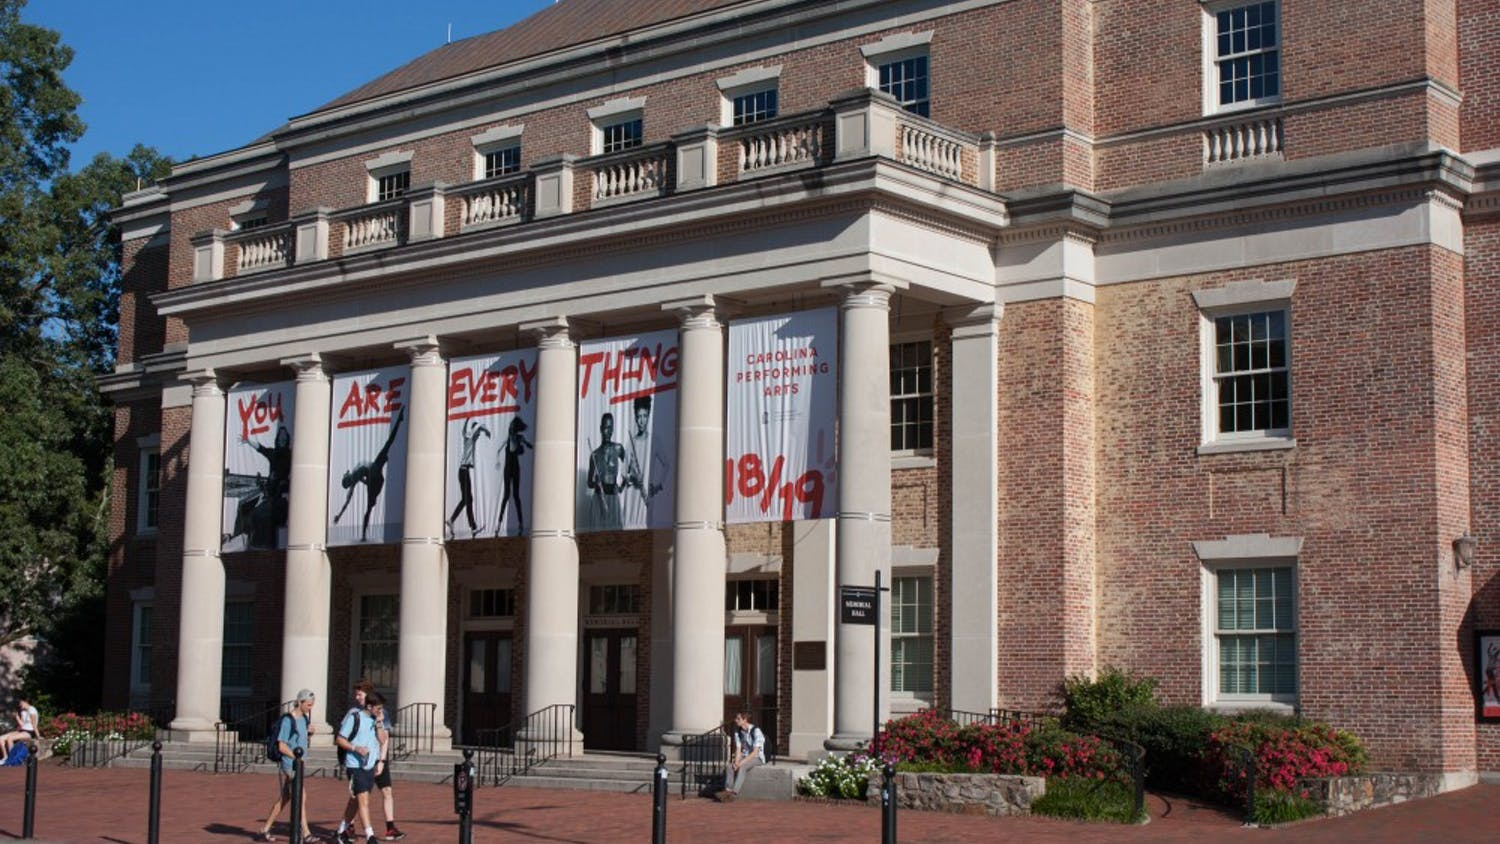 Memorial Hall is Carolina Performing Arts' largest venue. Carolina Performing Arts plans to implement sensory-friendly systems to make their productions more inclusive for patrons.